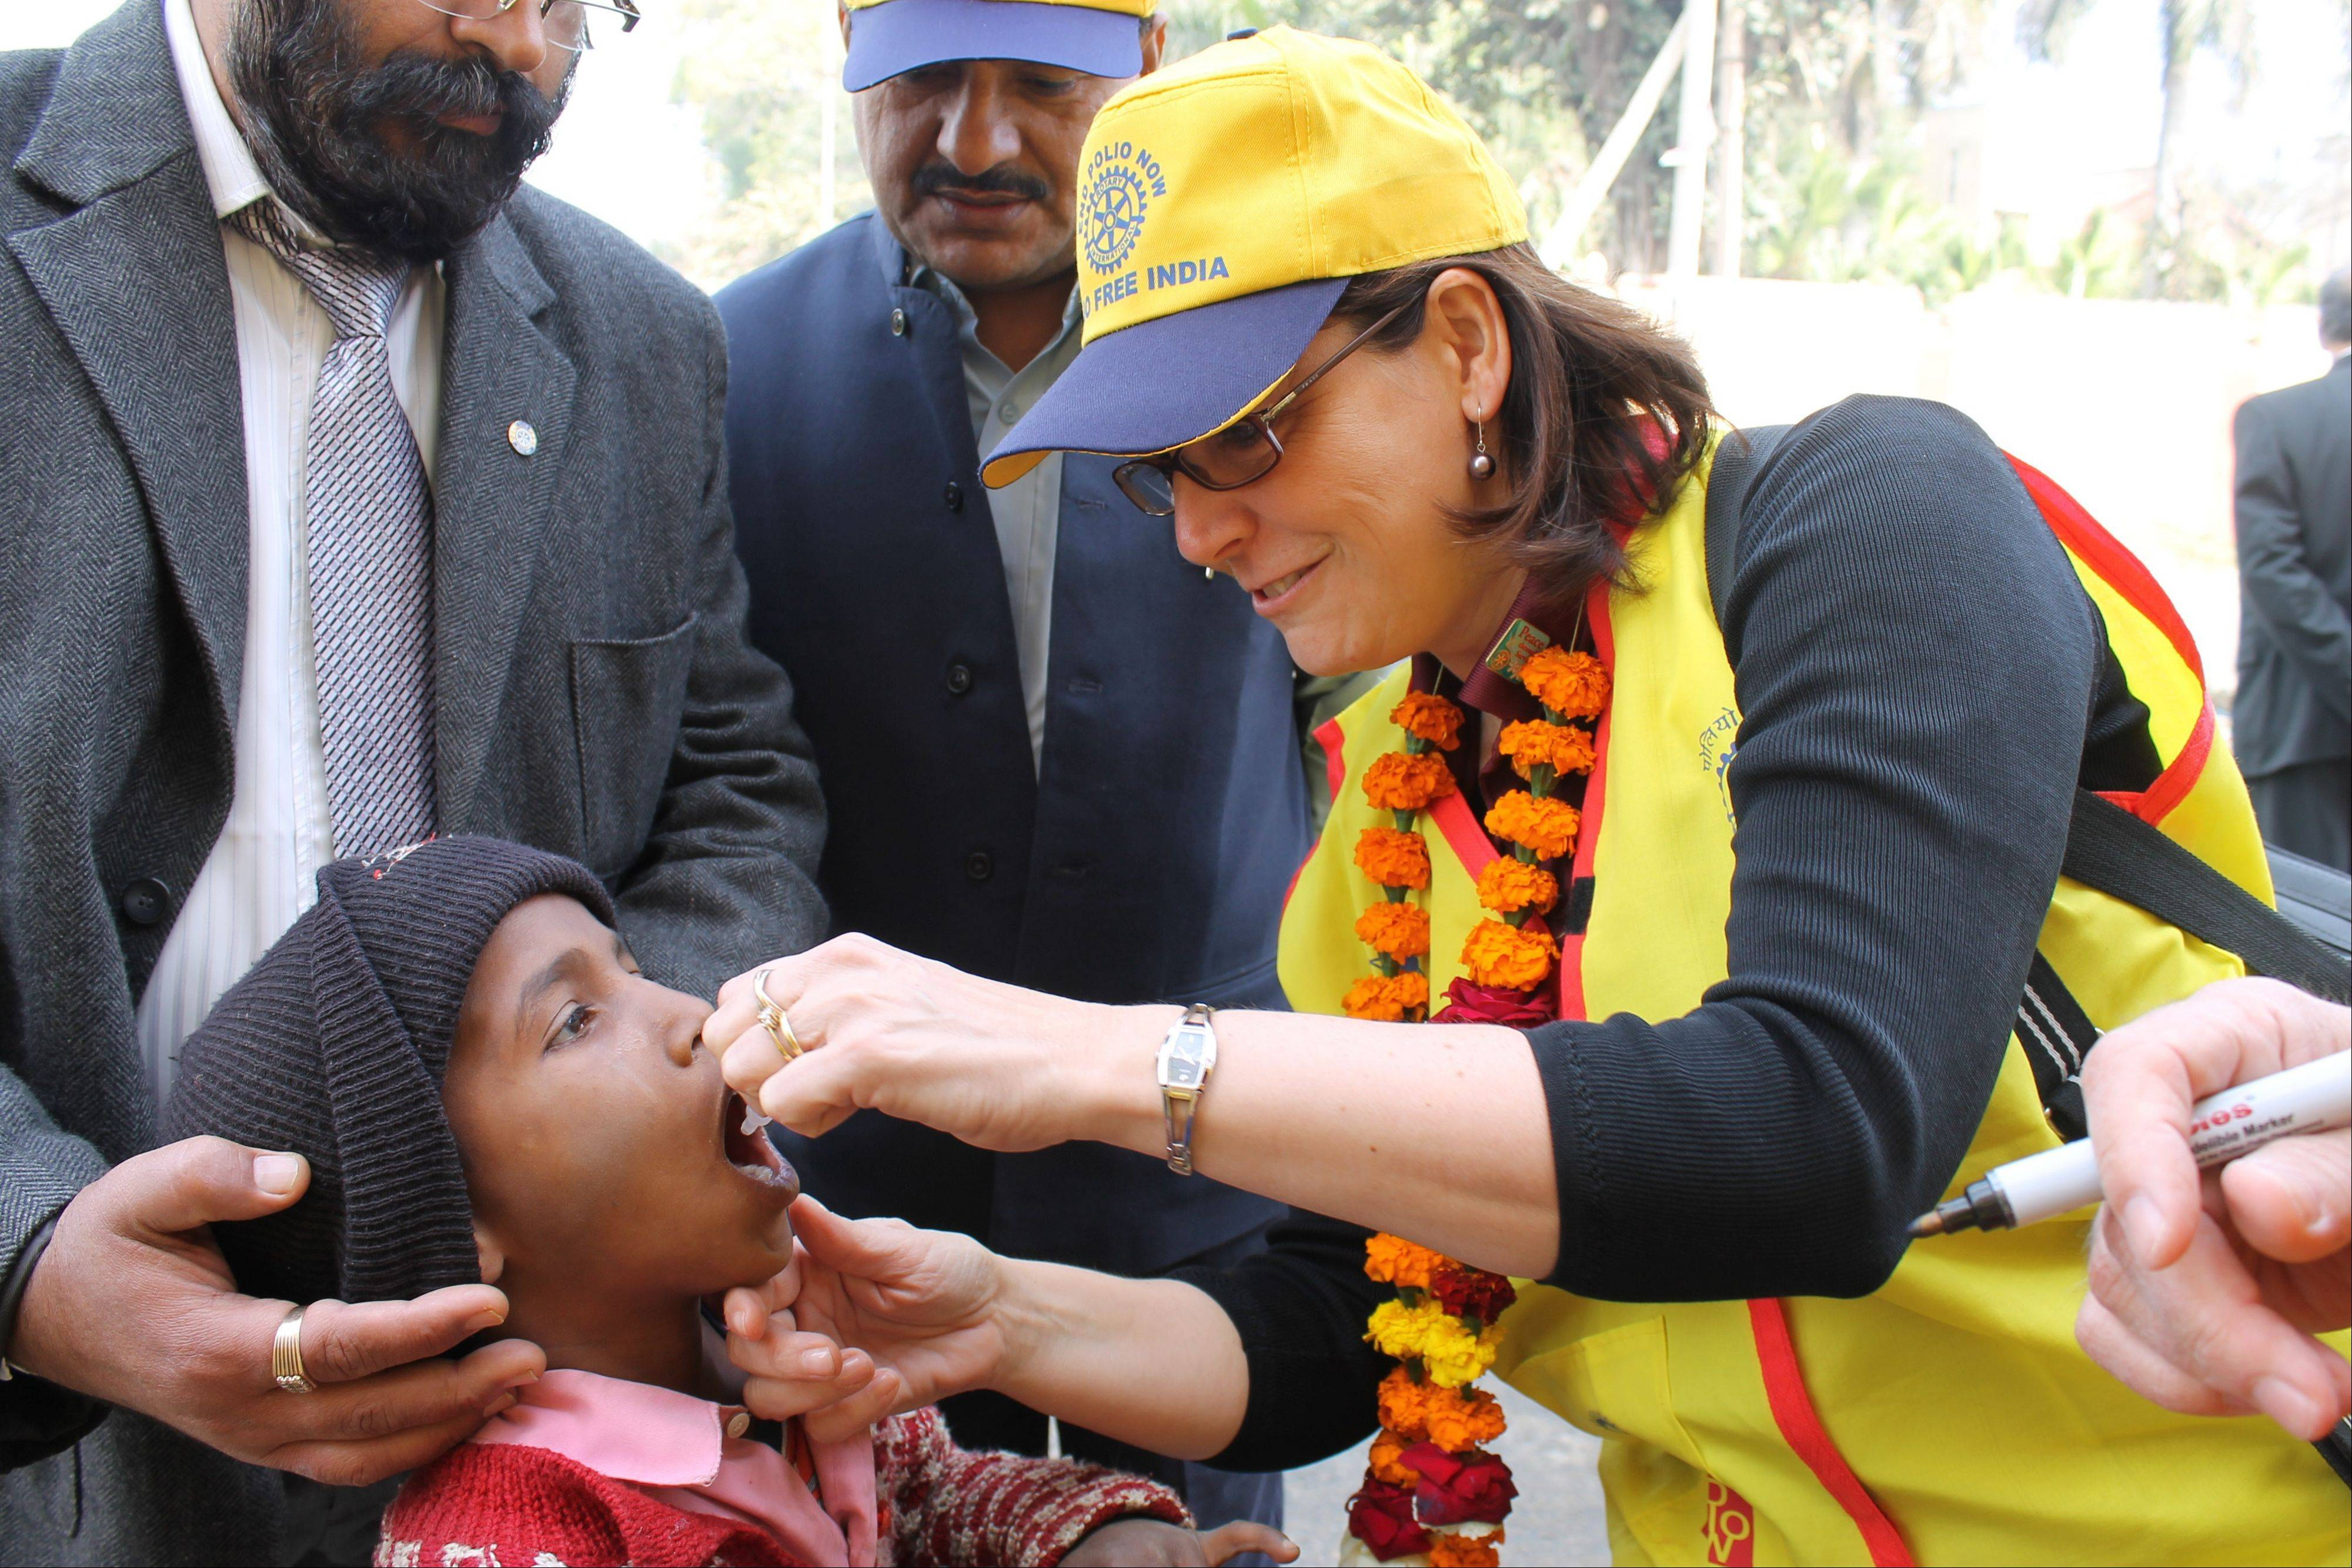 Rotary works to stamp out polio around the world